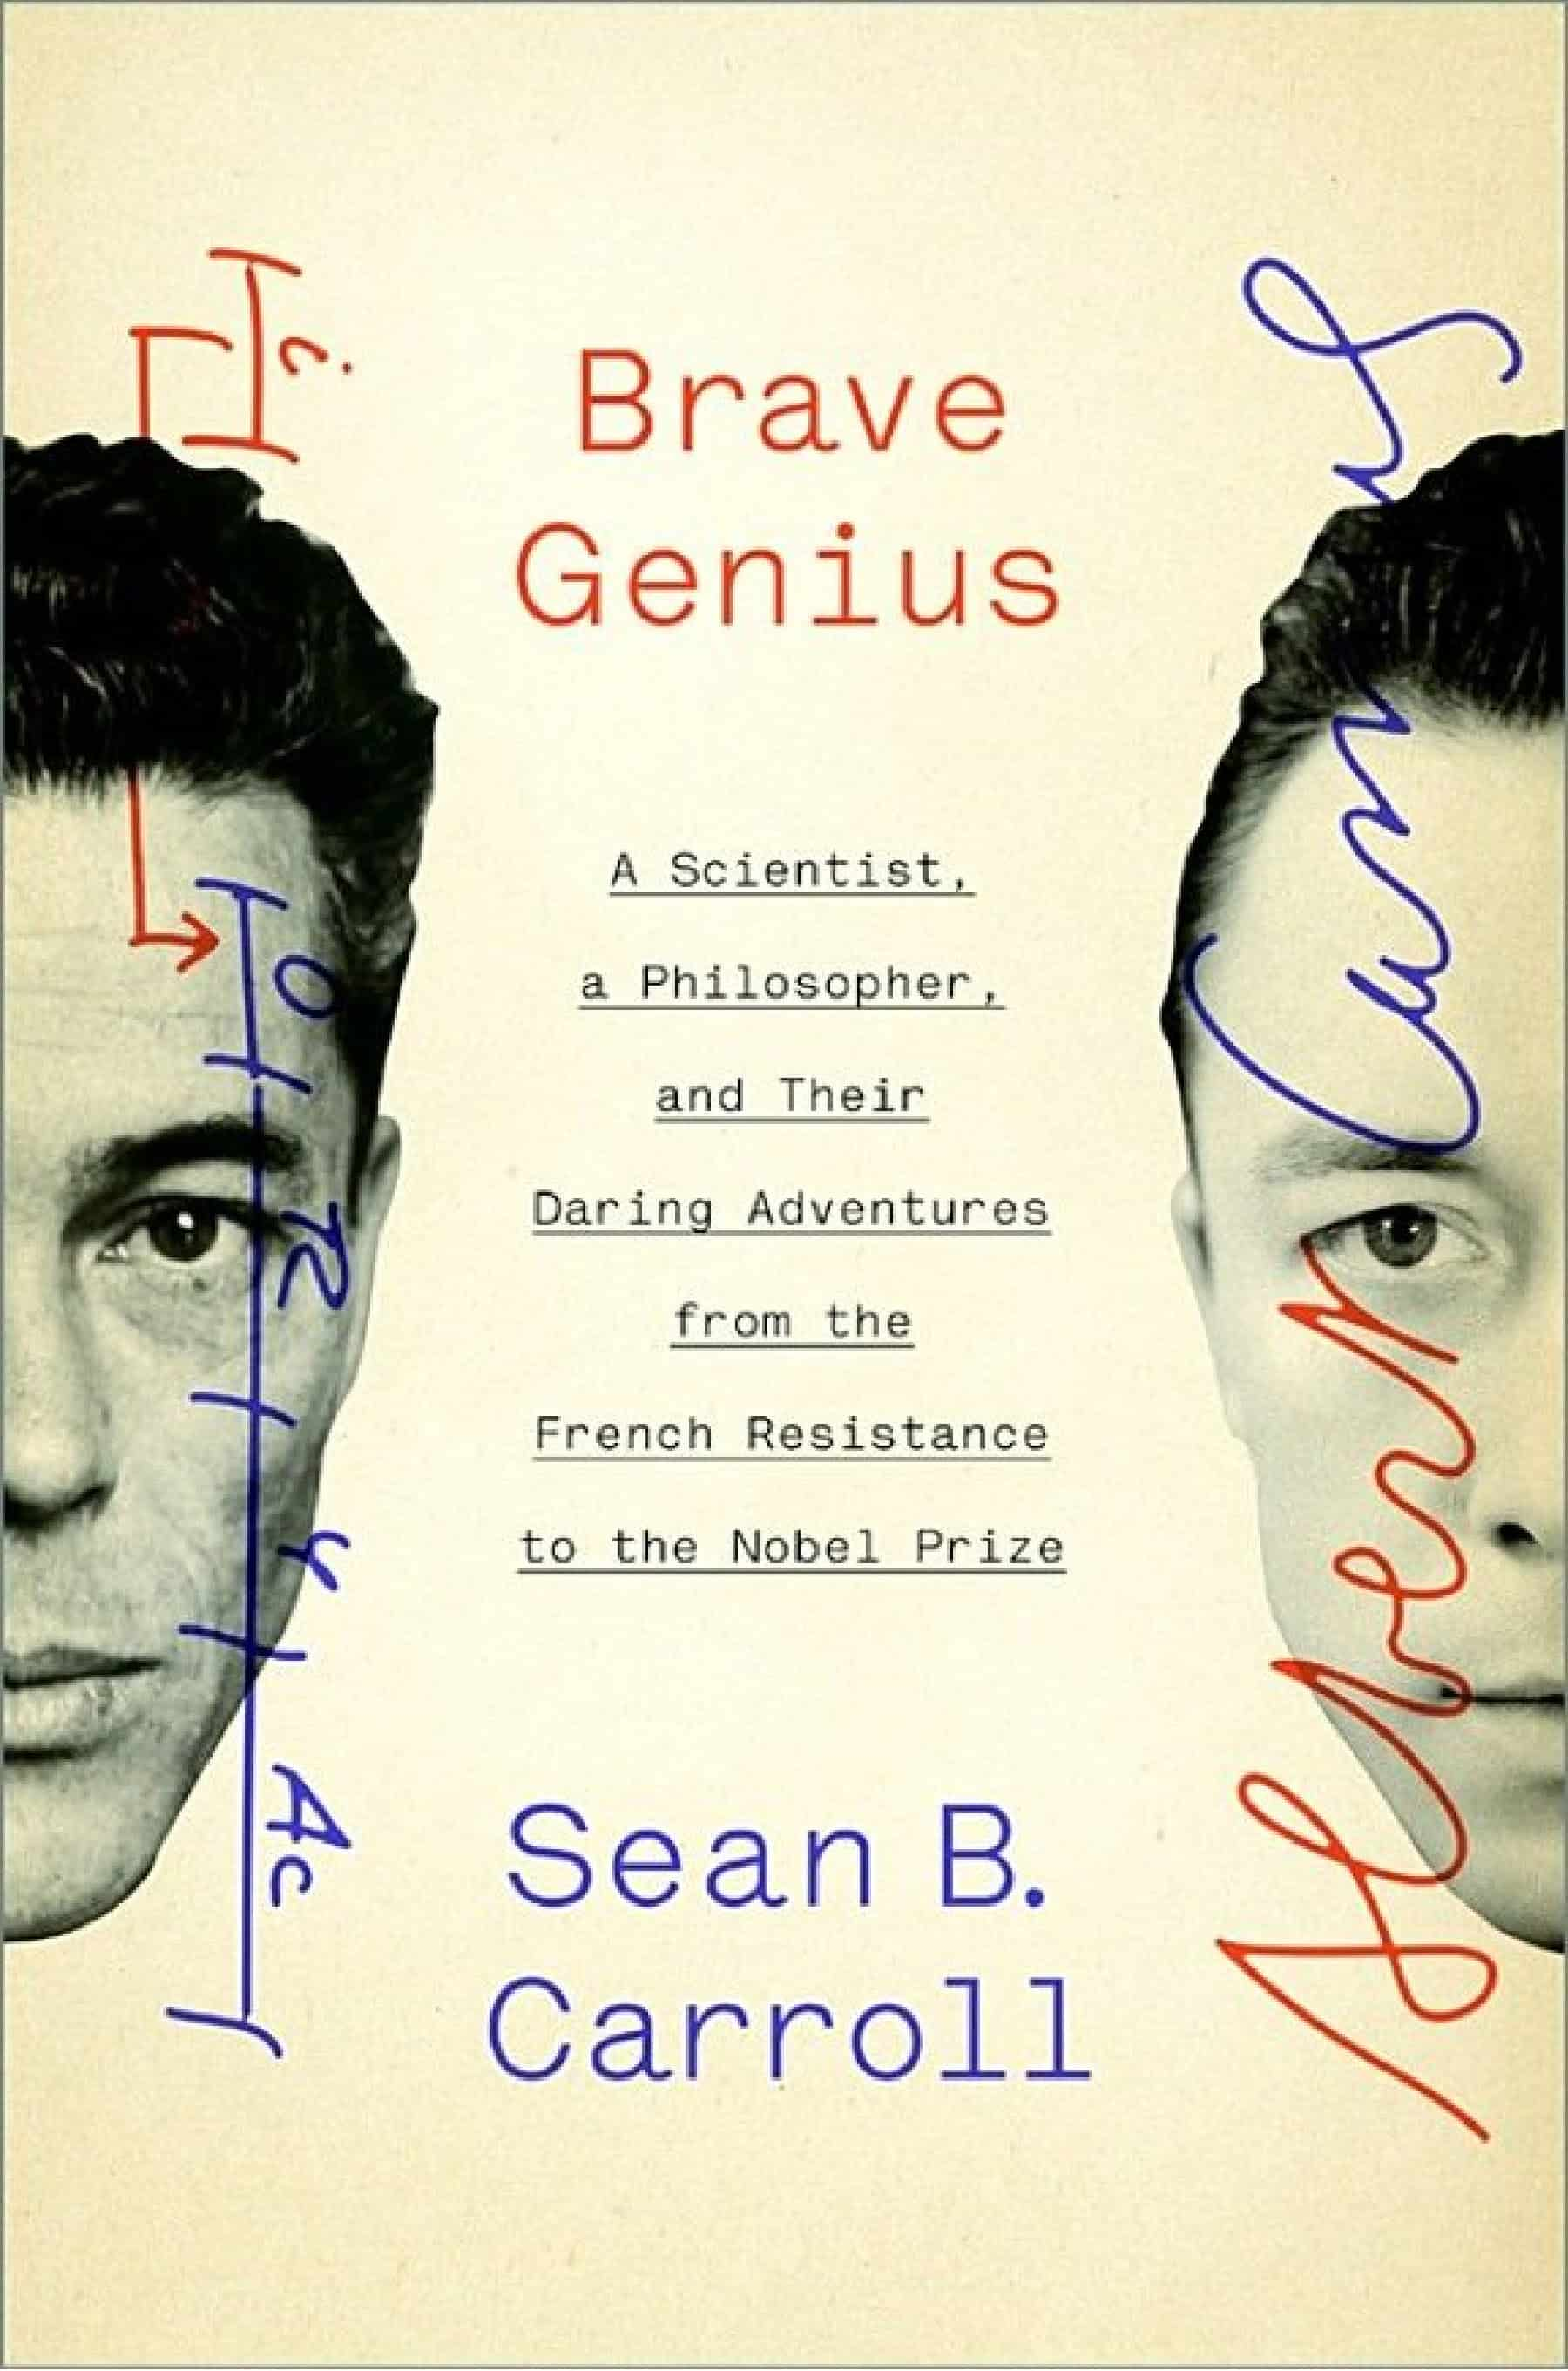 Brave Genius - Brave Genius: A Scientist, a Philosopher, and Their Daring Adventures from the French Resistance to the Nobel Prize